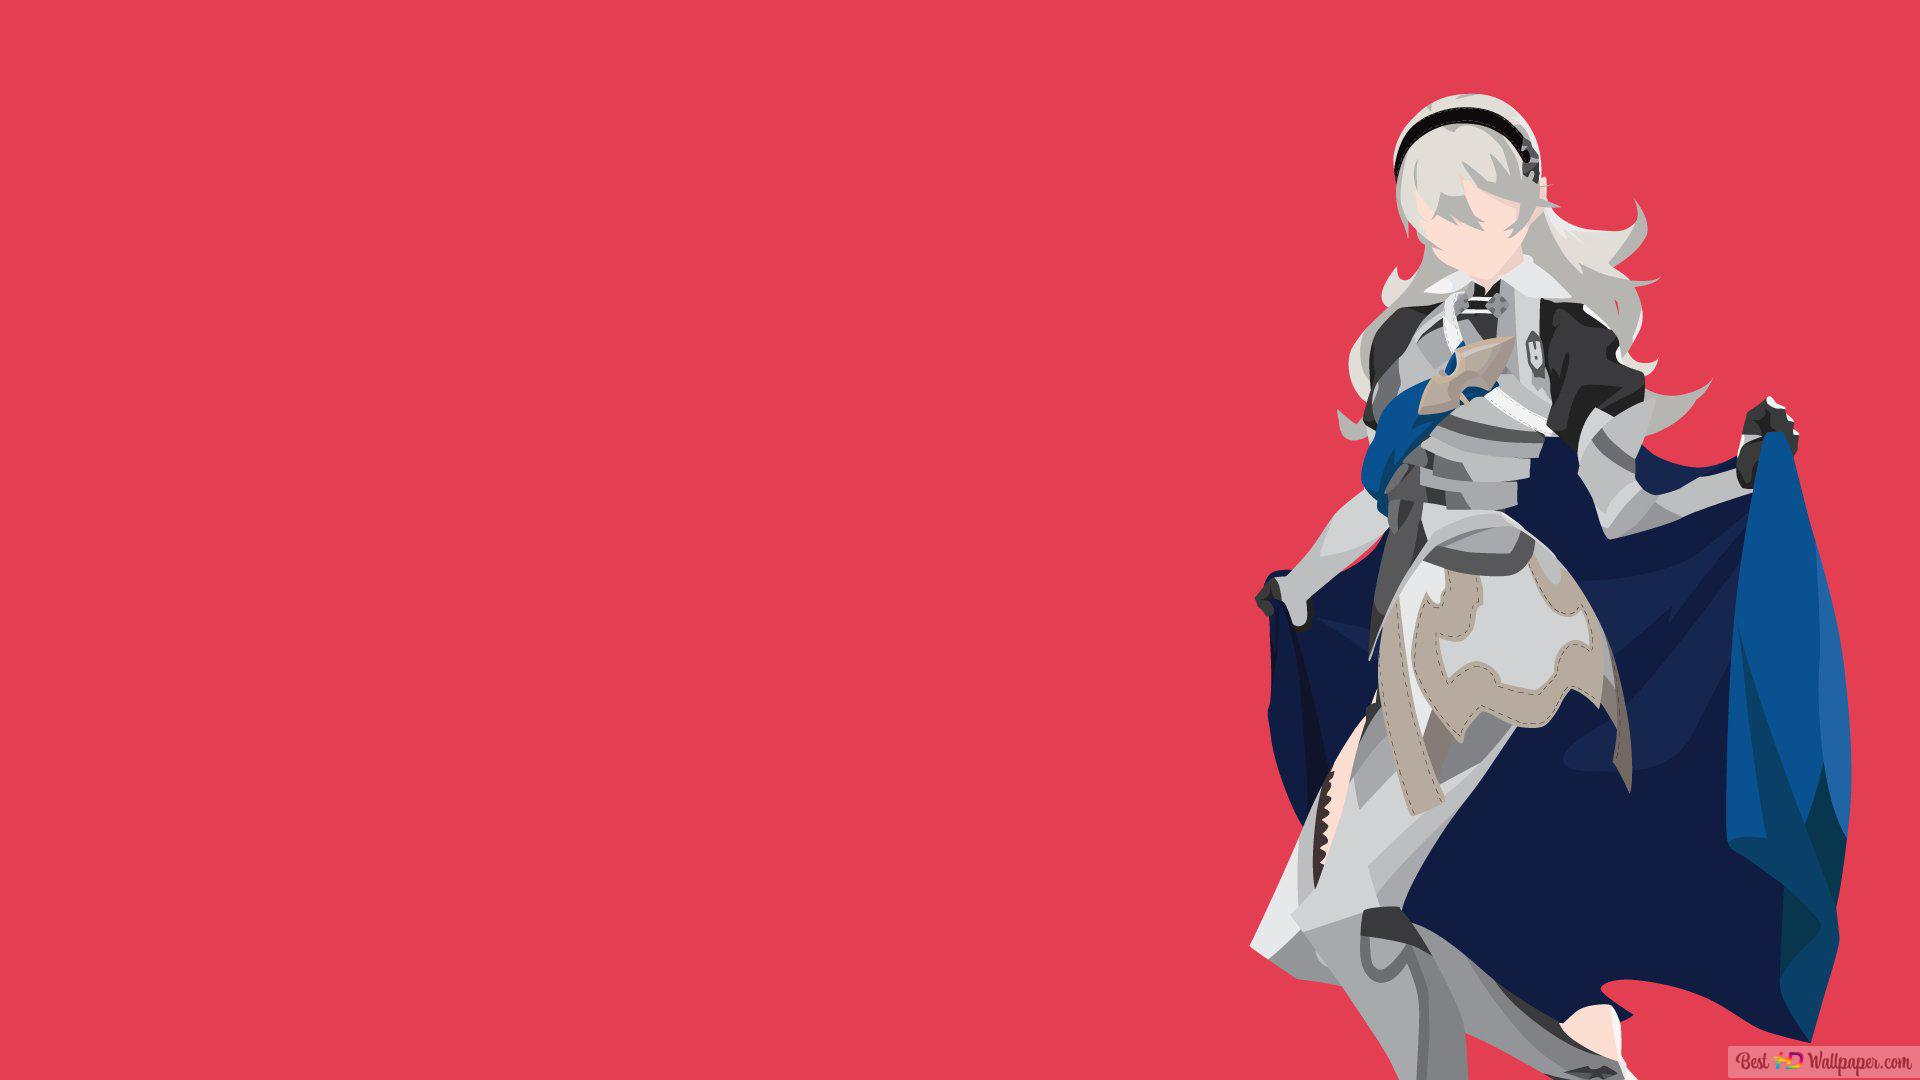 Fire Emblem Fates Female Corrin Hd Wallpaper Download